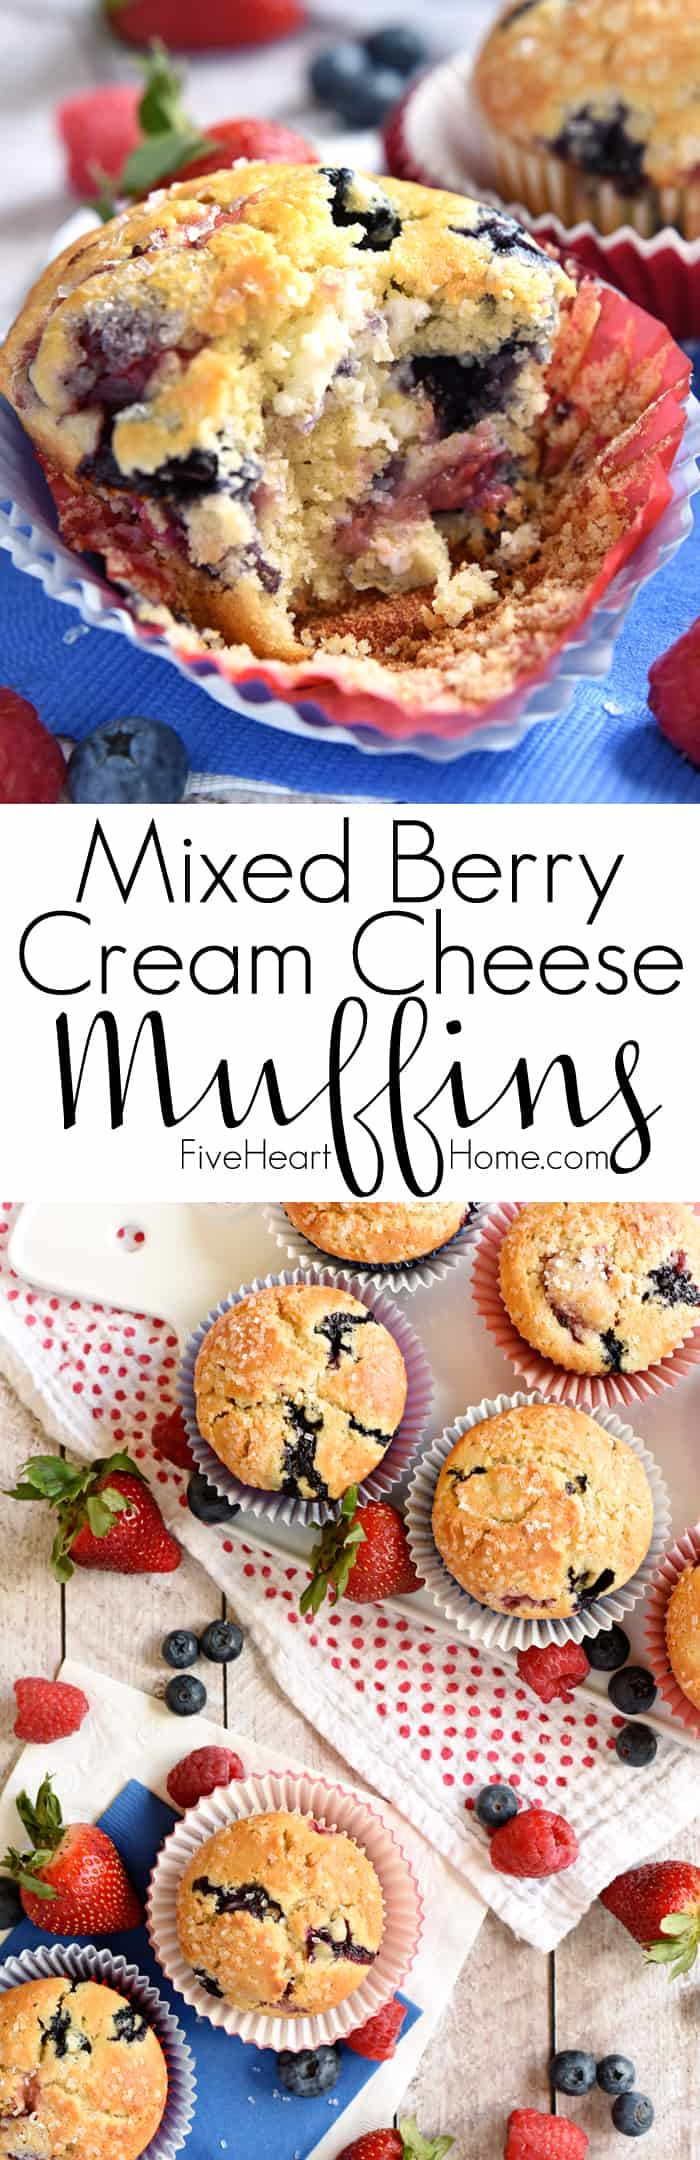 Mixed Berry Cream Cheese Muffins Collage with Text Overlay